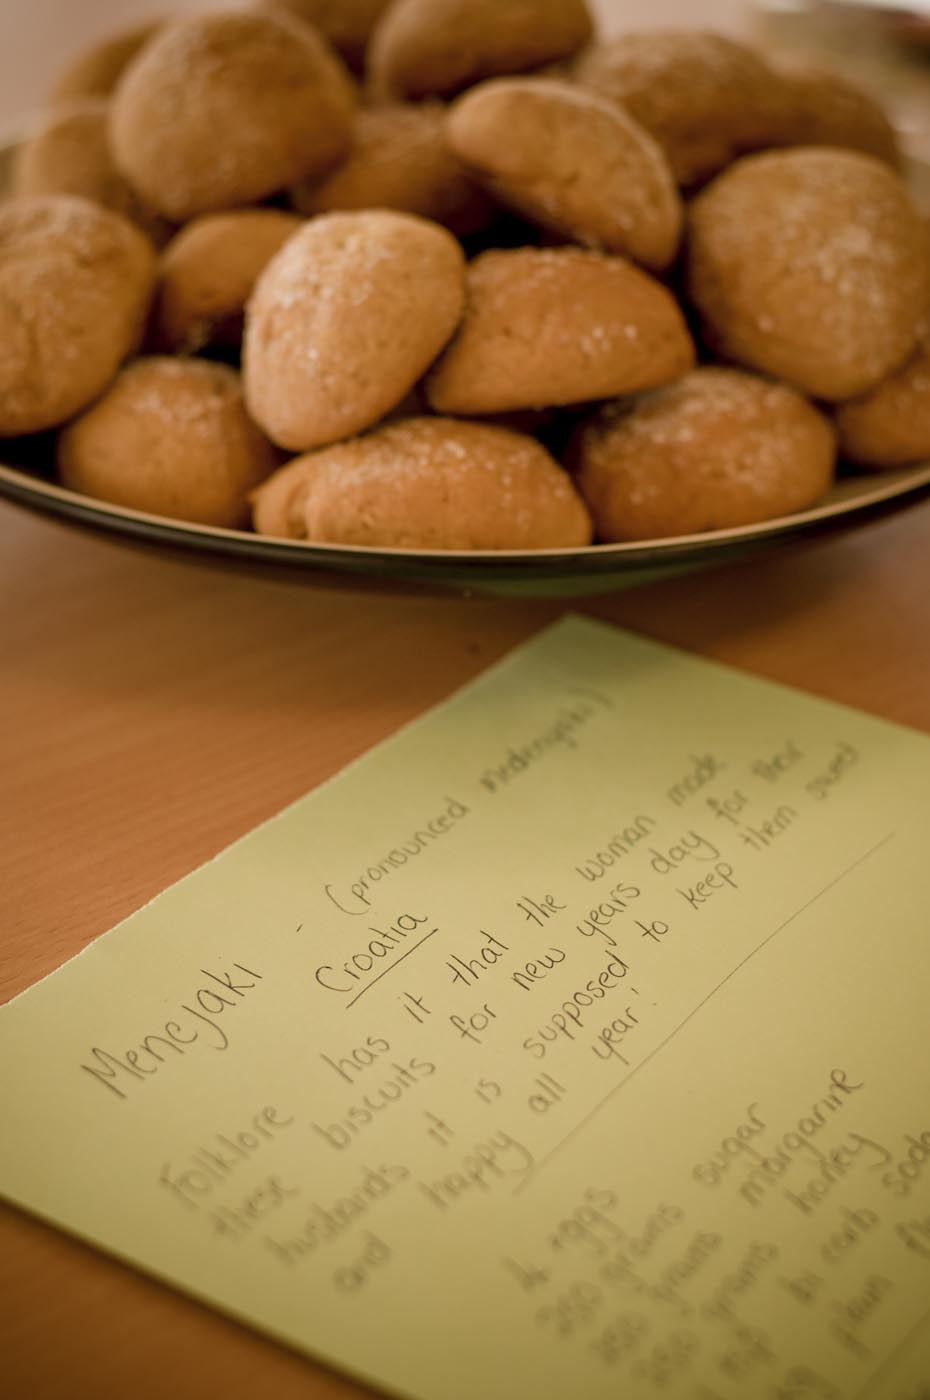 Photo showing a handwritten receipt for Menejaki, Croatian biscuits, with a bowl of the biscuits displayed above - click to view larger image